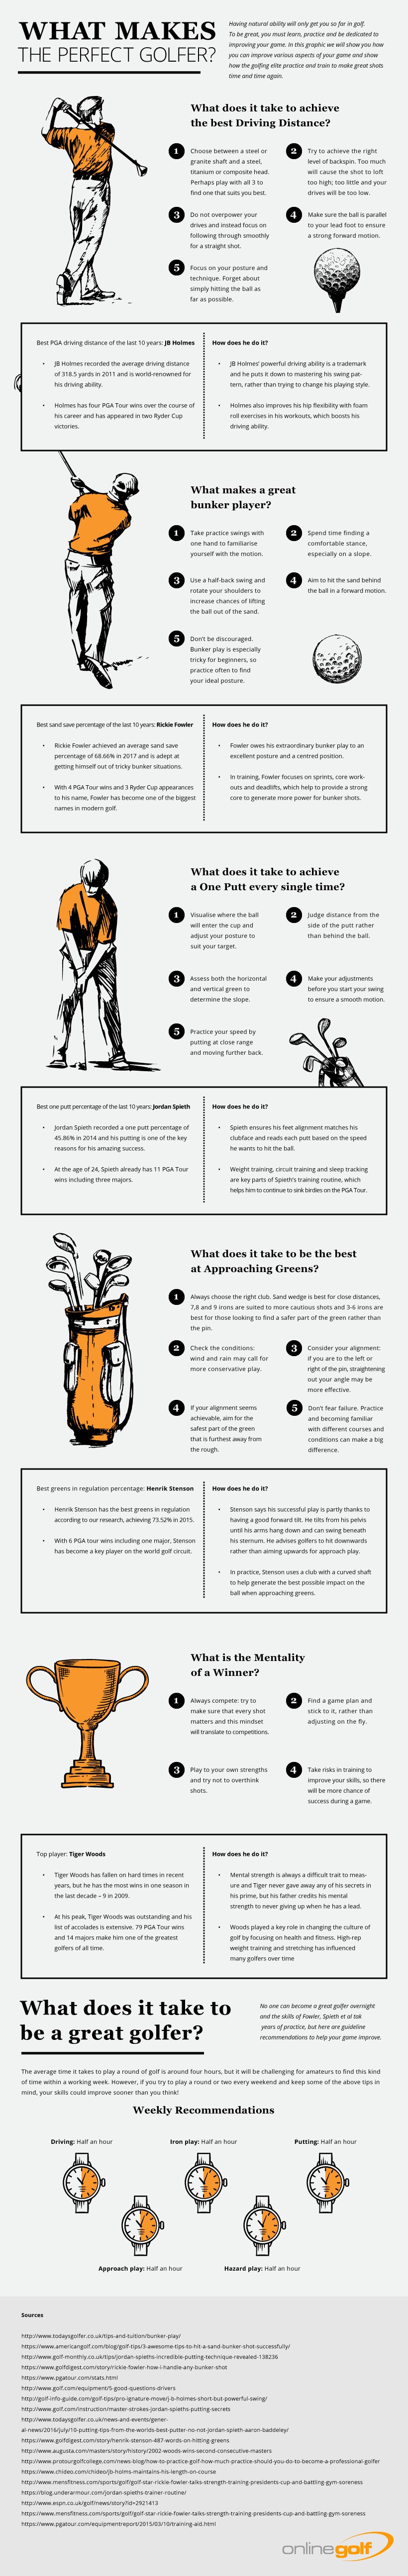 What makes the perfect golfer?